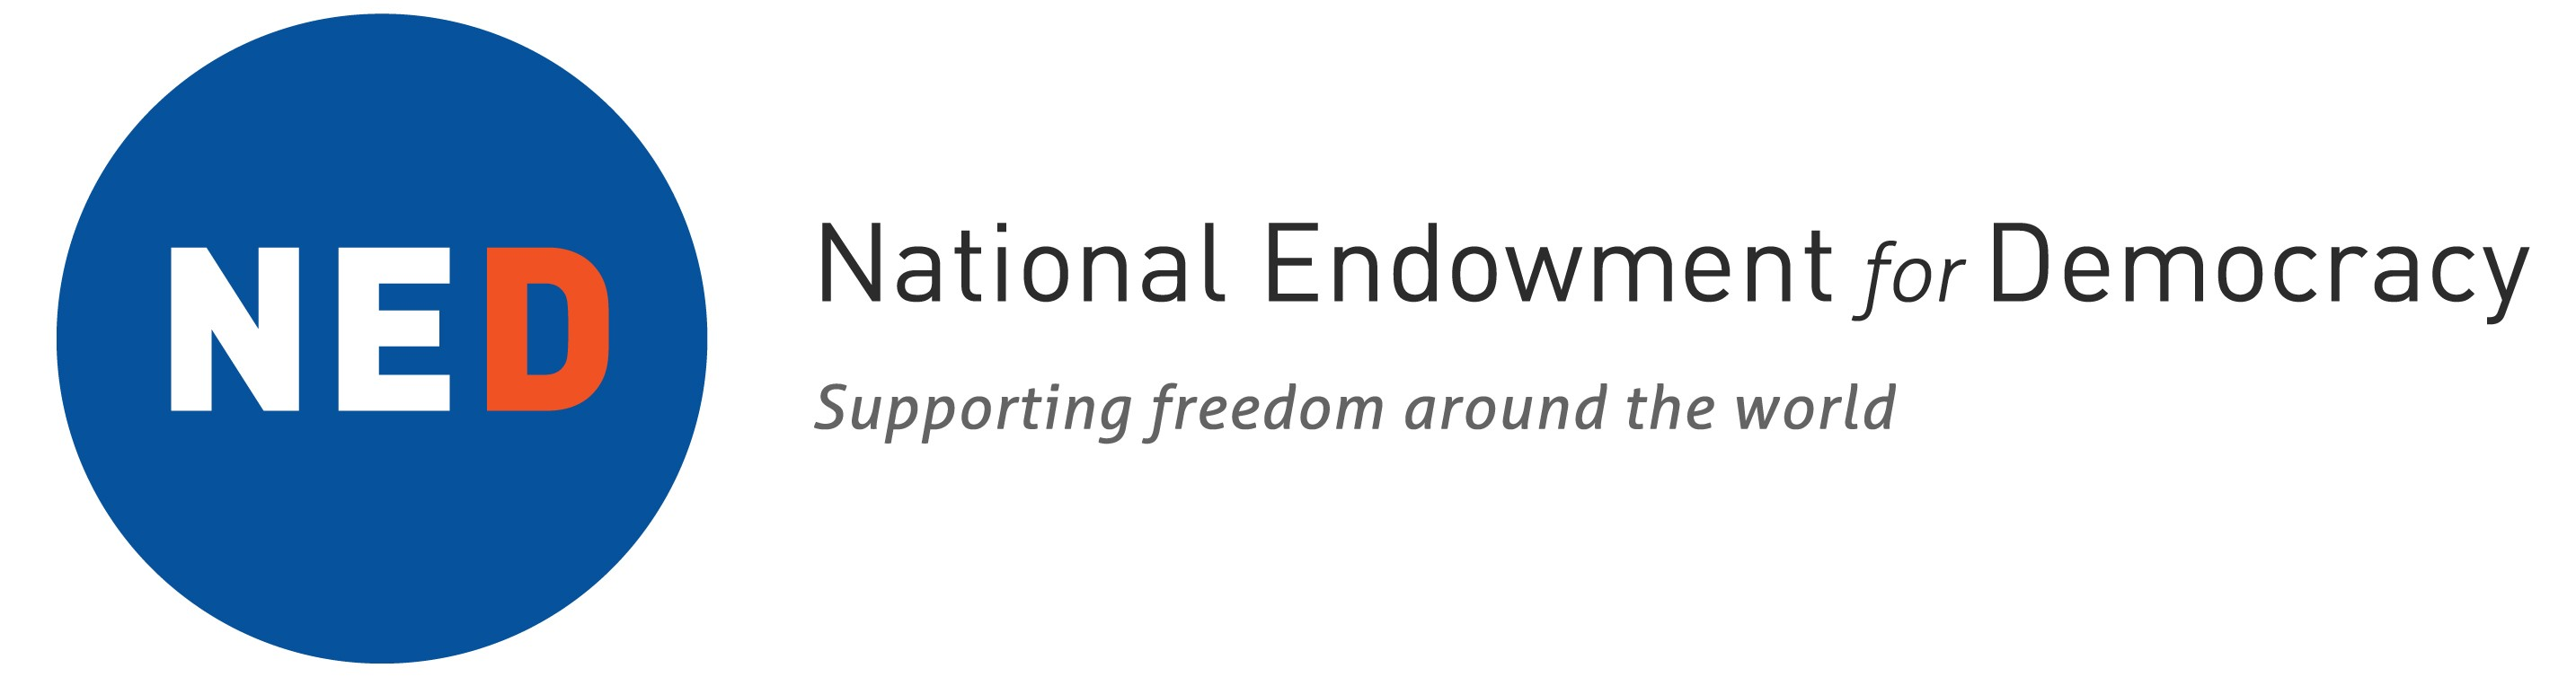 logo endowment for democracy